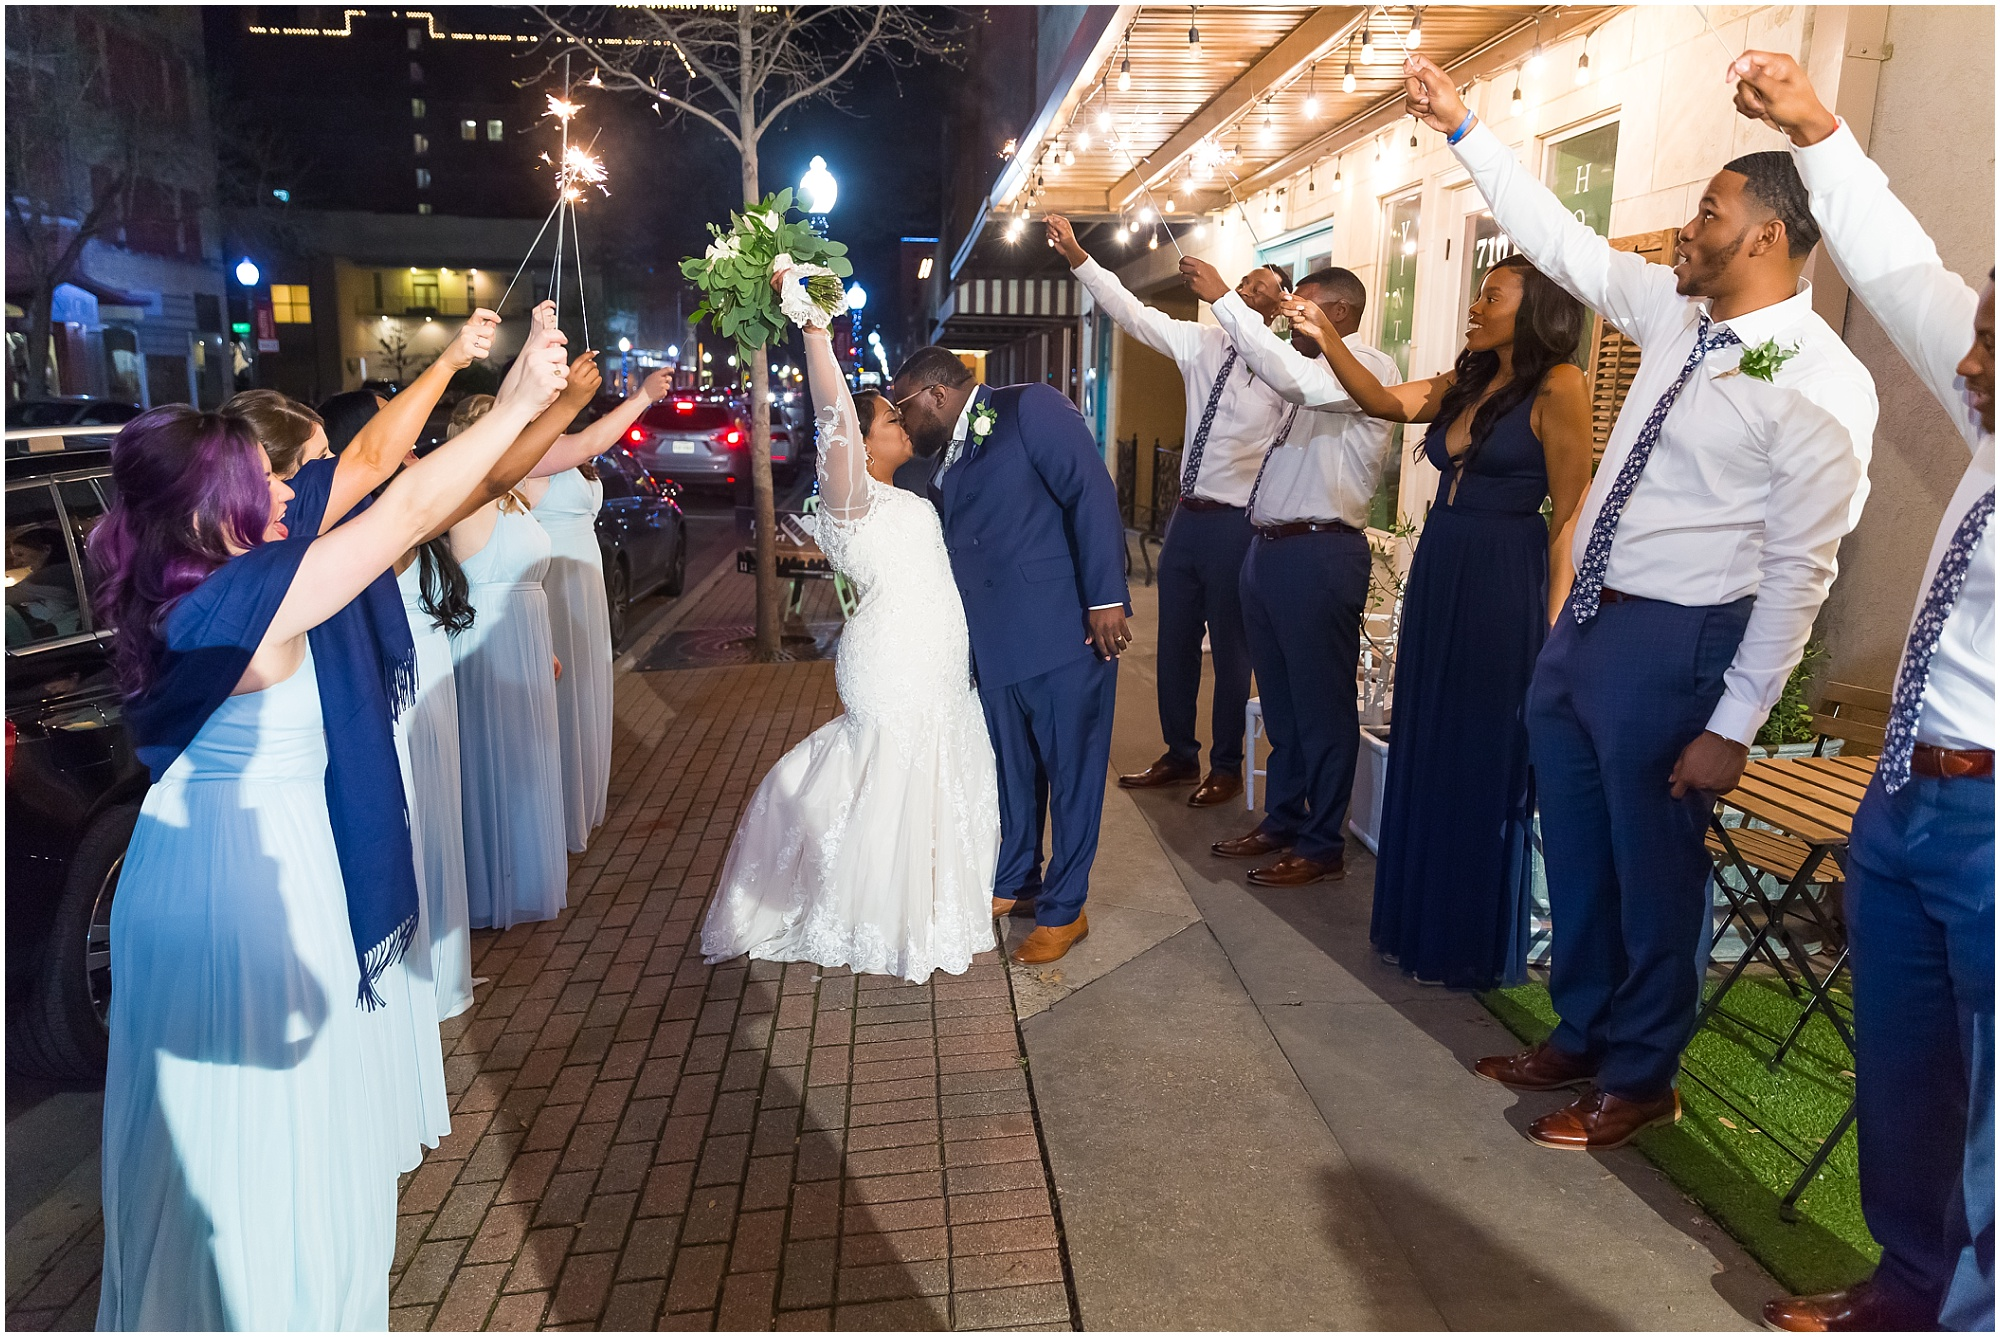 A bride and groom kiss under sparklers outside their reception at Cultivate 7Twelve in downtown Waco, Texas - Jason & Melaina Photography - www.jasonandmelaina.com